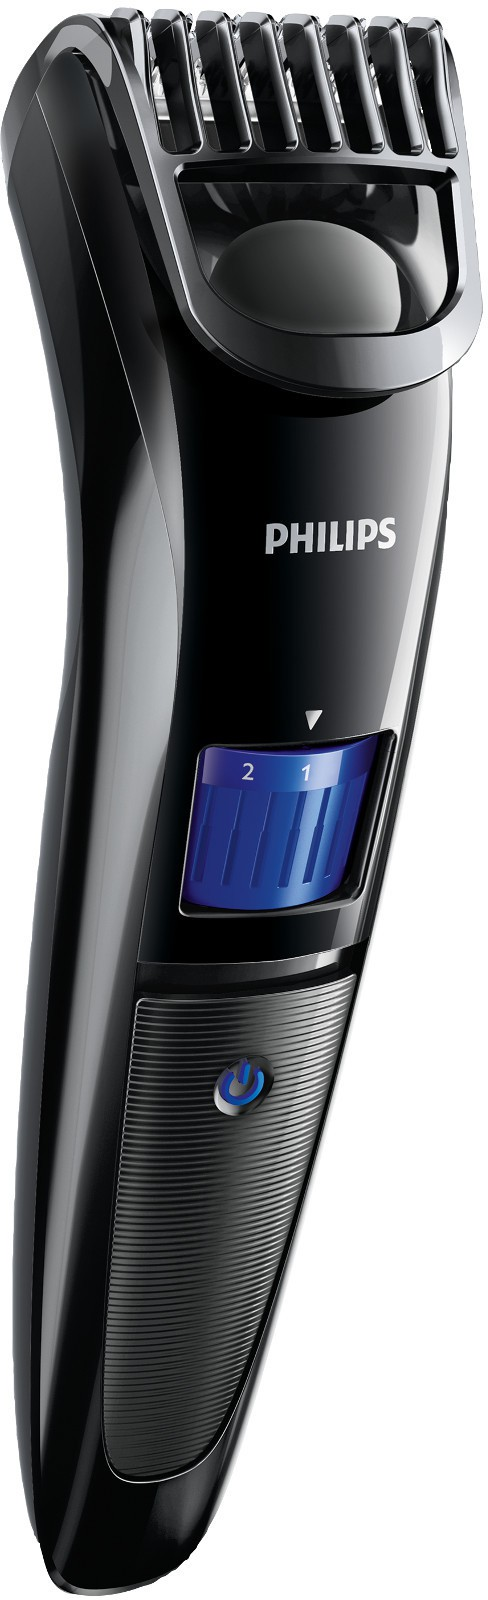 Deals - Gurgaon - Minimum 20% off <br> From Philips<br> Category - health_personal_care_appliances<br> Business - Flipkart.com